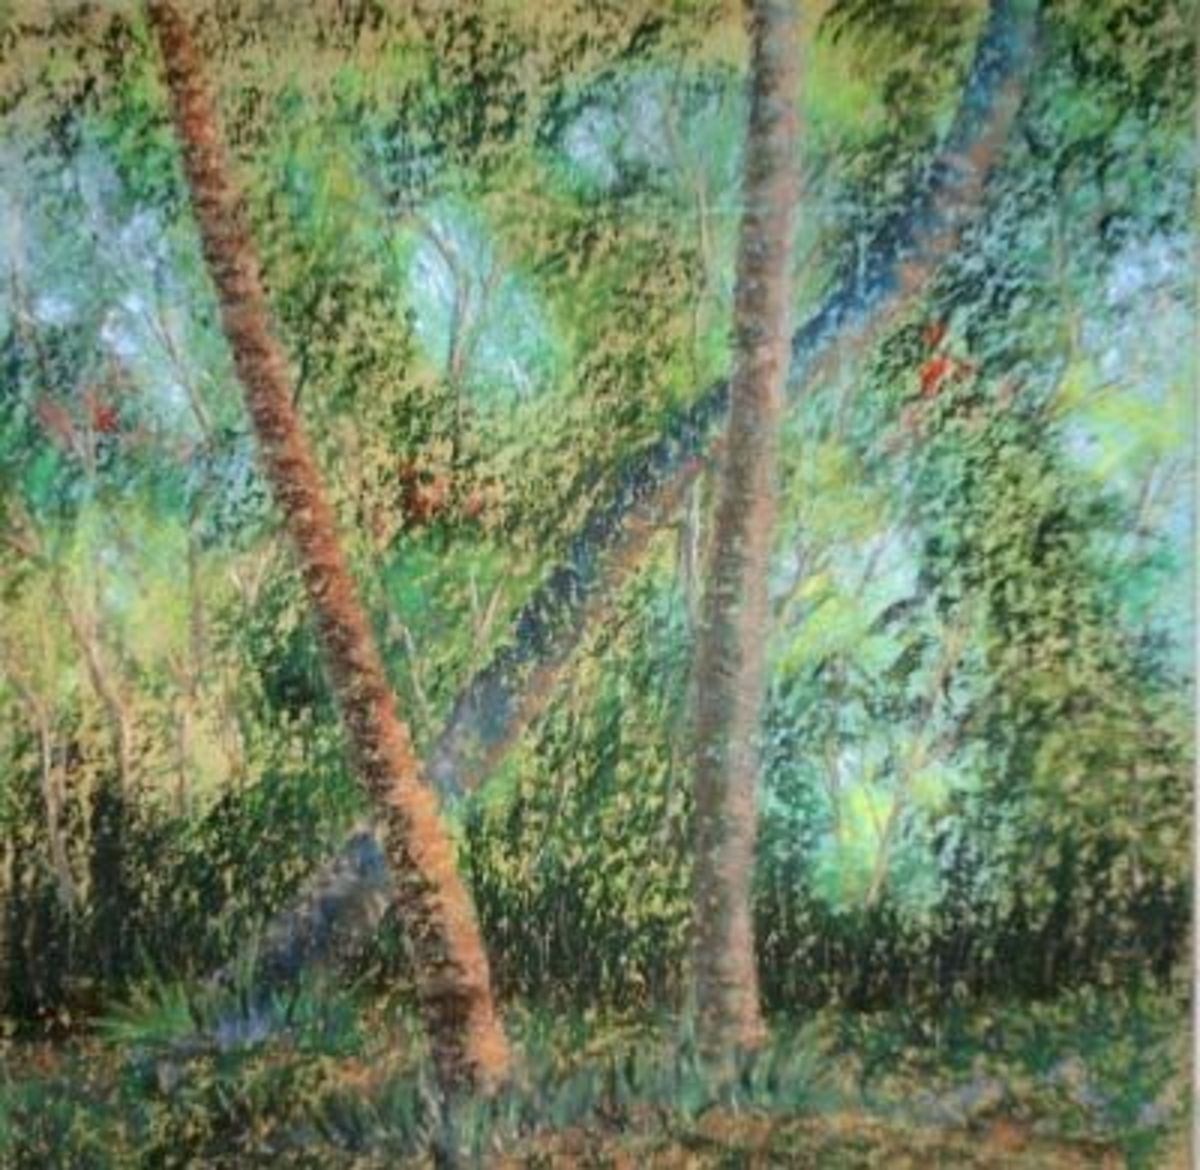 Let's Take a Quick Count: A falling tree, pastel painting